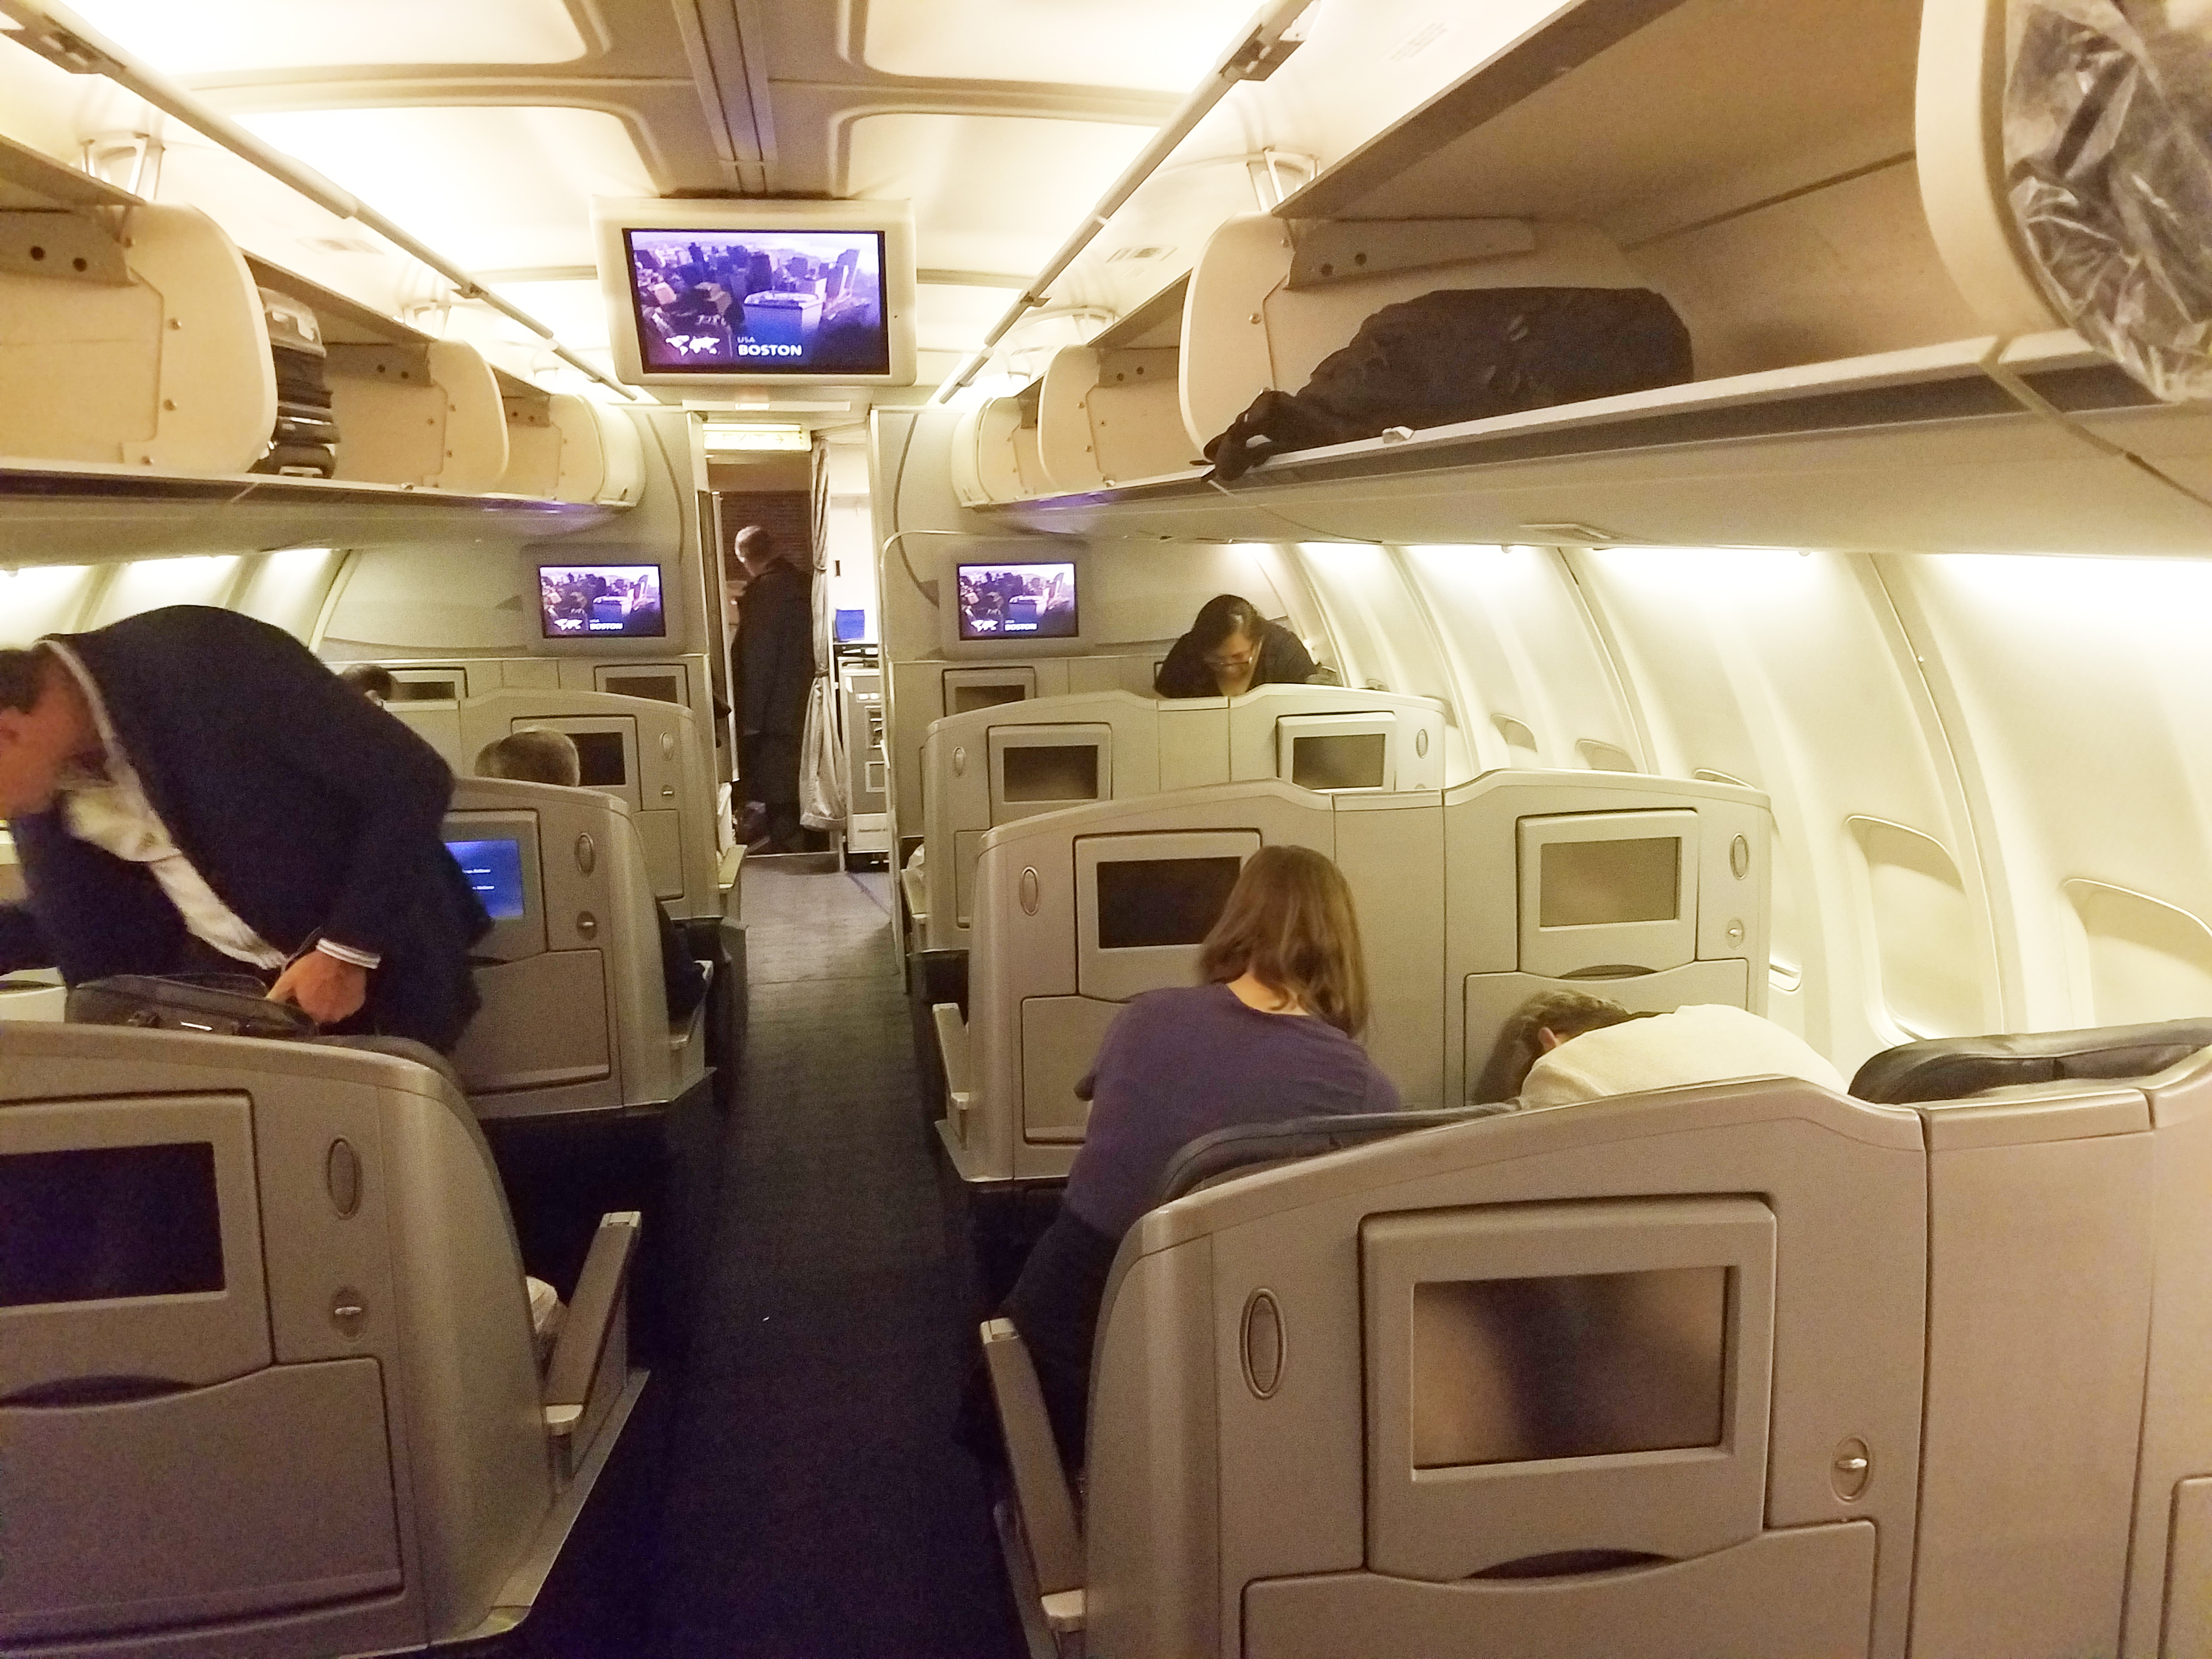 American Airlines 757-200 Review (Economy) – 'Twas Still the Worst of Times